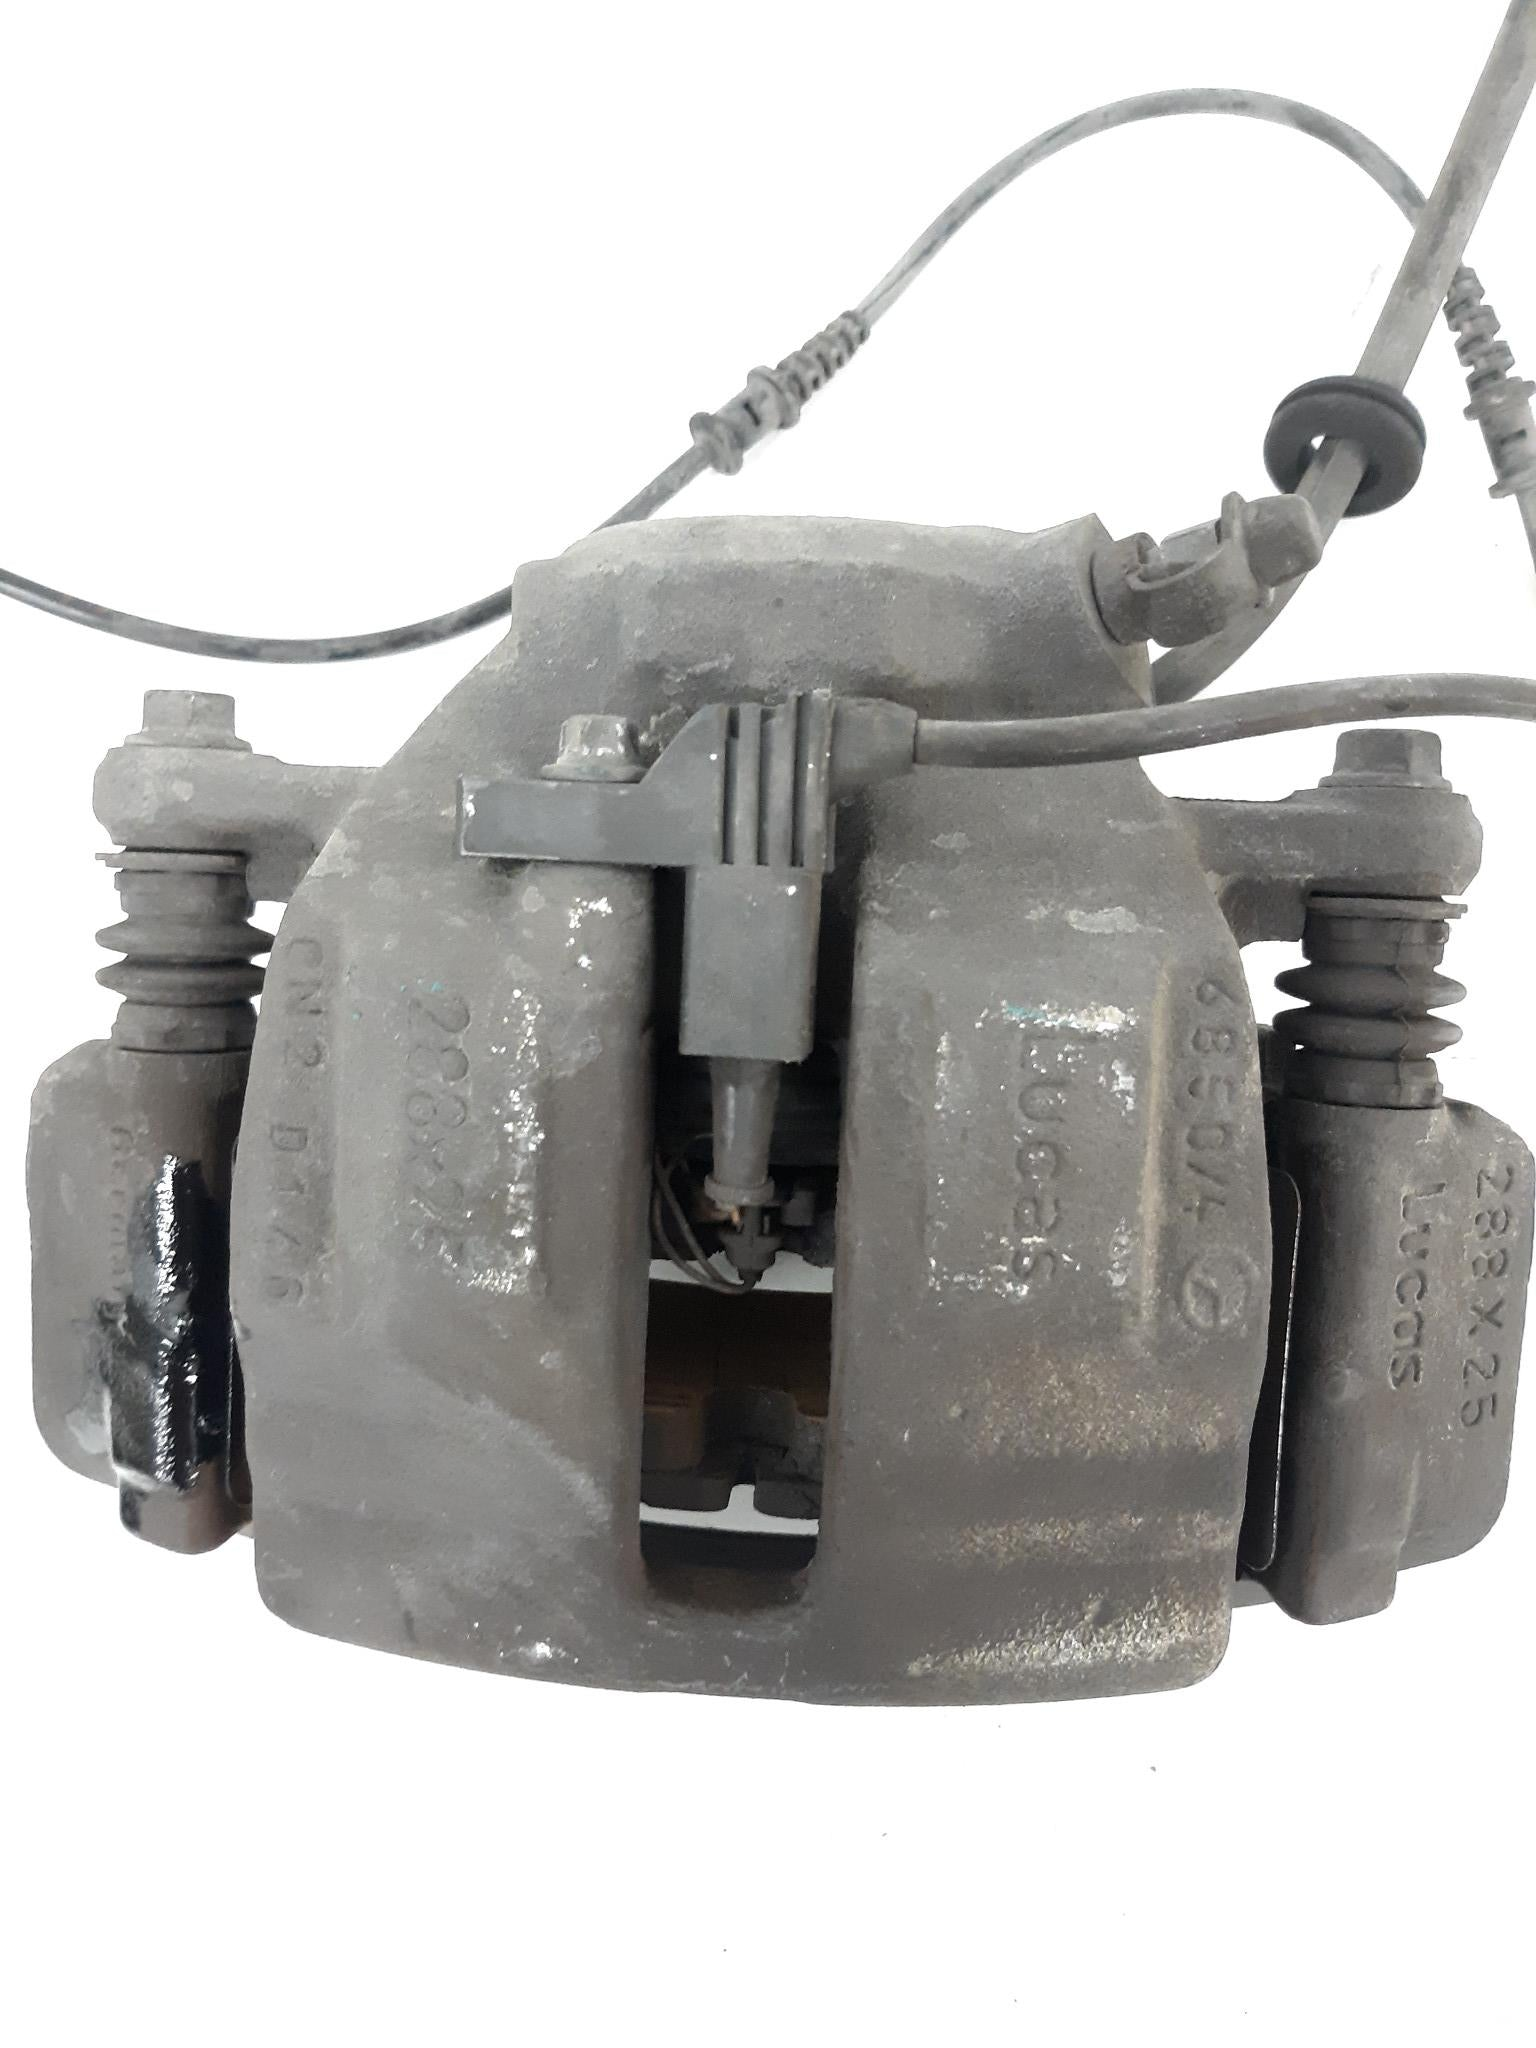 2001 - 2011 MERCEDES-BENZ R171 W209 W203 C240 FRONT RIGHT BRAKE CALIPER OEM - Click Receive Auto Parts